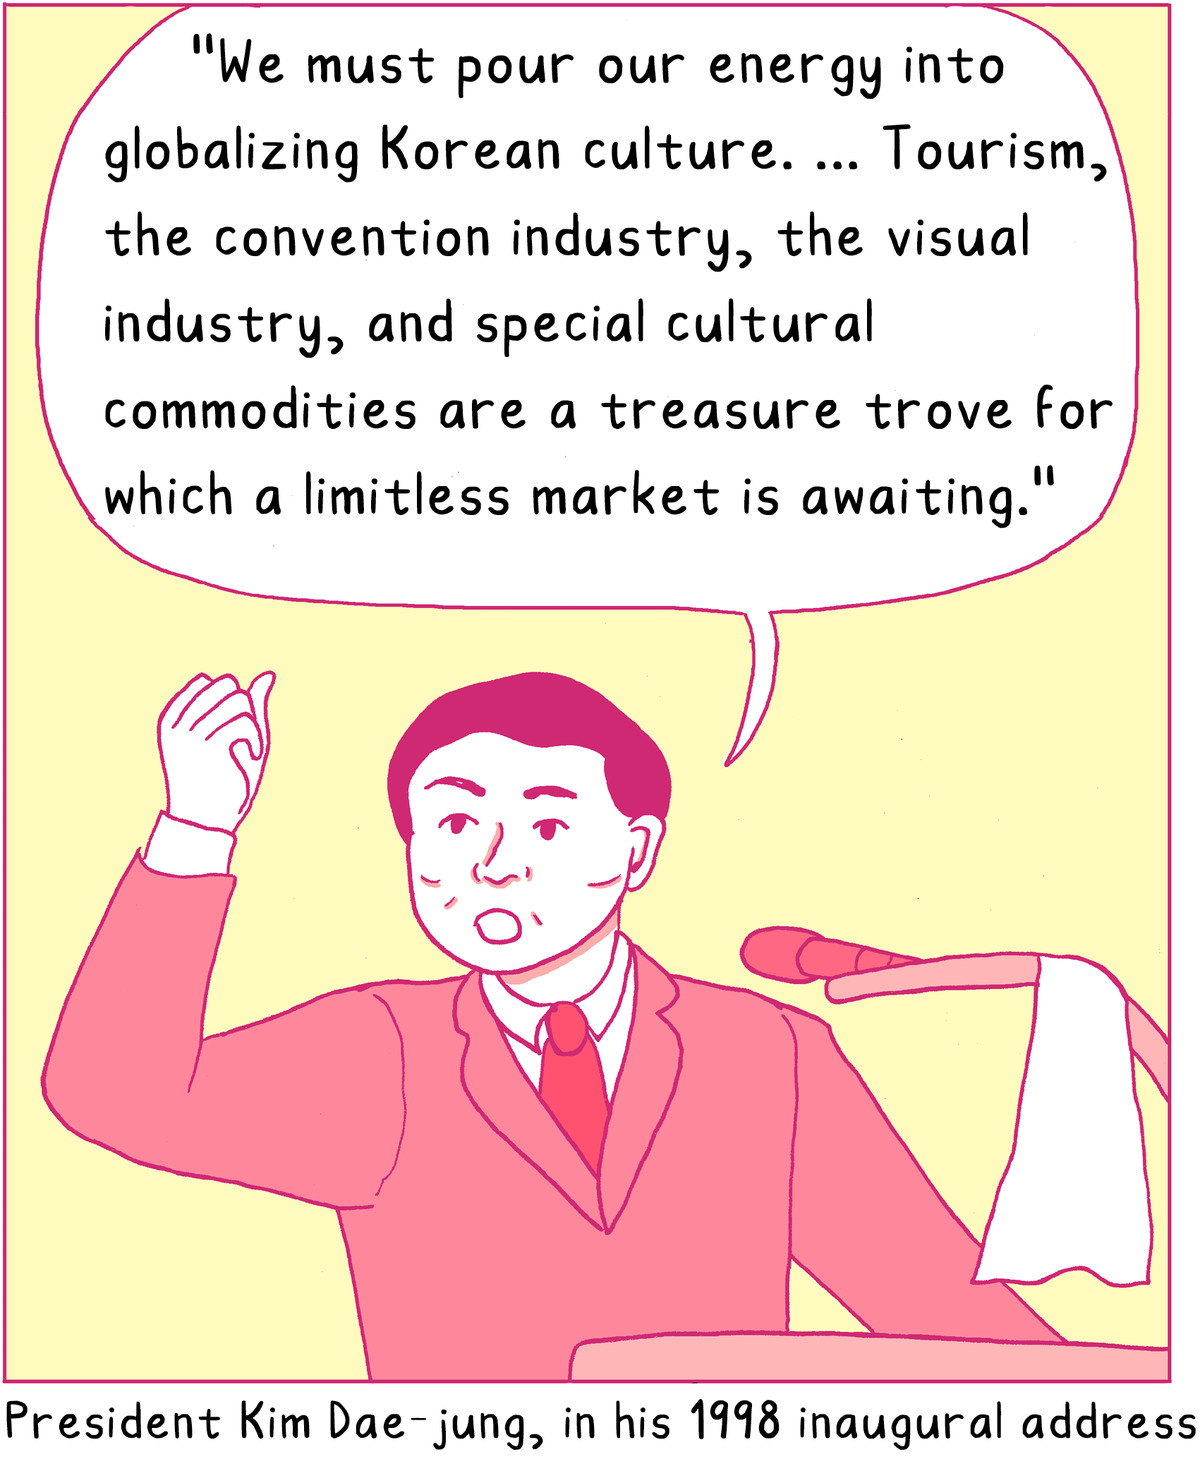 """""""We must pour our energy into globalizing Korean culture...Tourism, the convention industry, the visual industry, and special cultural commodities are a treasure trove for which a limitless market is awaiting."""" -President Kim Dae Jung, in his 1998 Inaugural Address"""